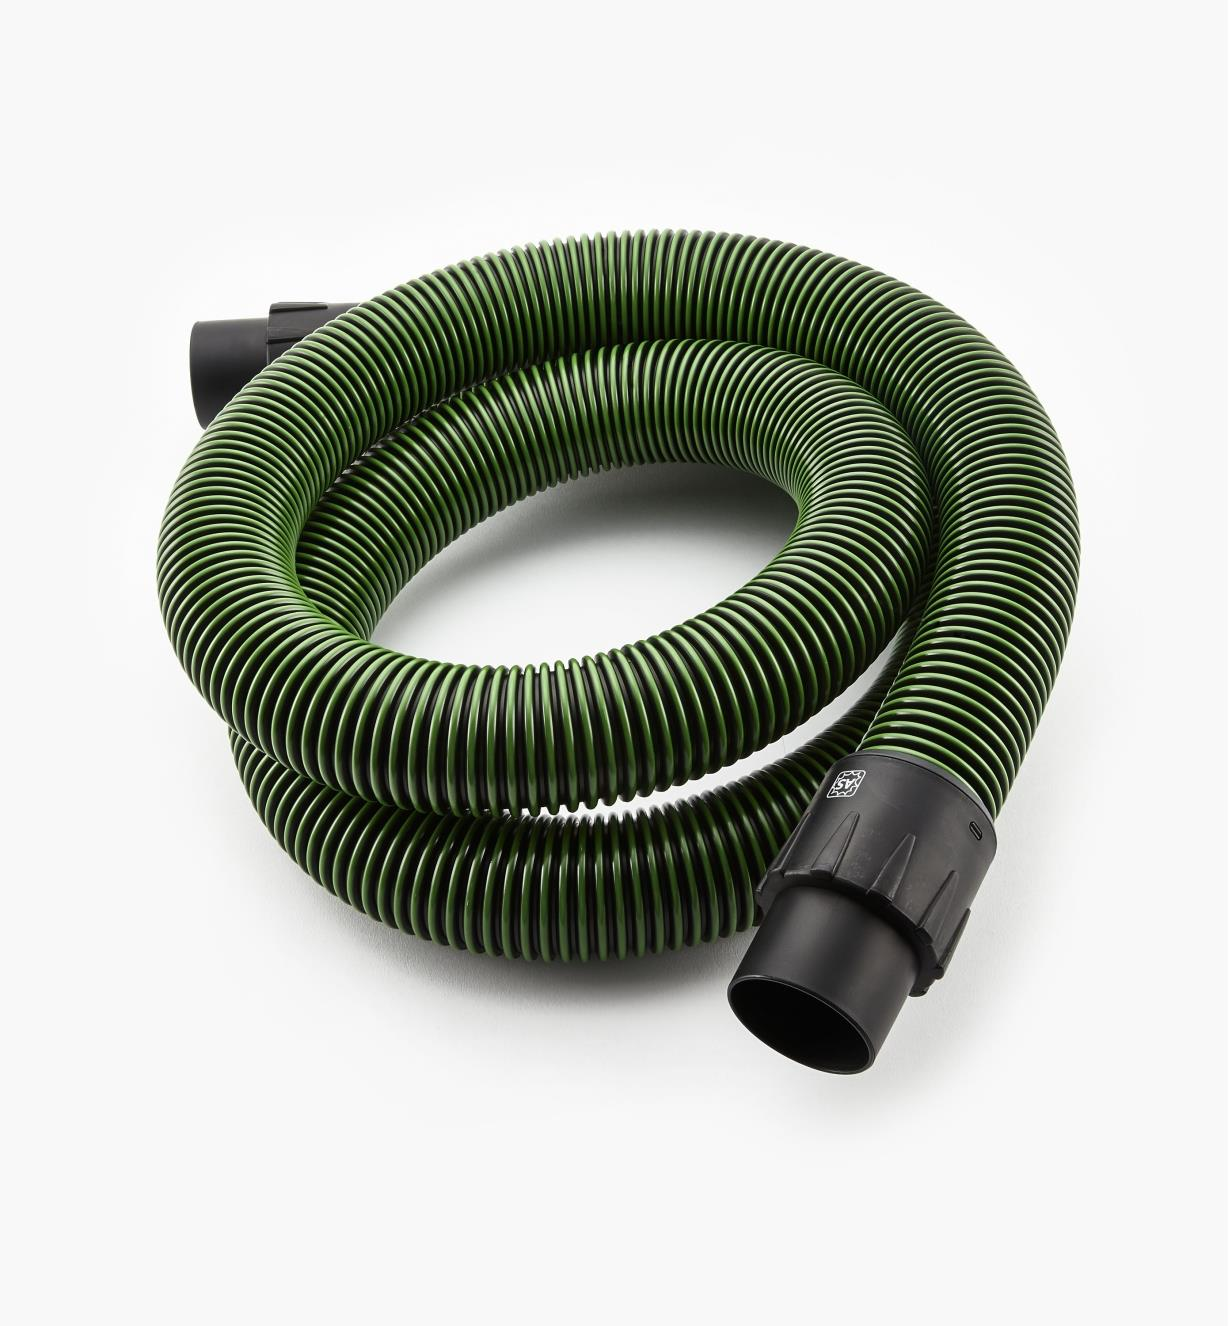 "ZA452888 - 50mm x 2.5m (1 15/16"" x 8'3"") Anti-static Hose"